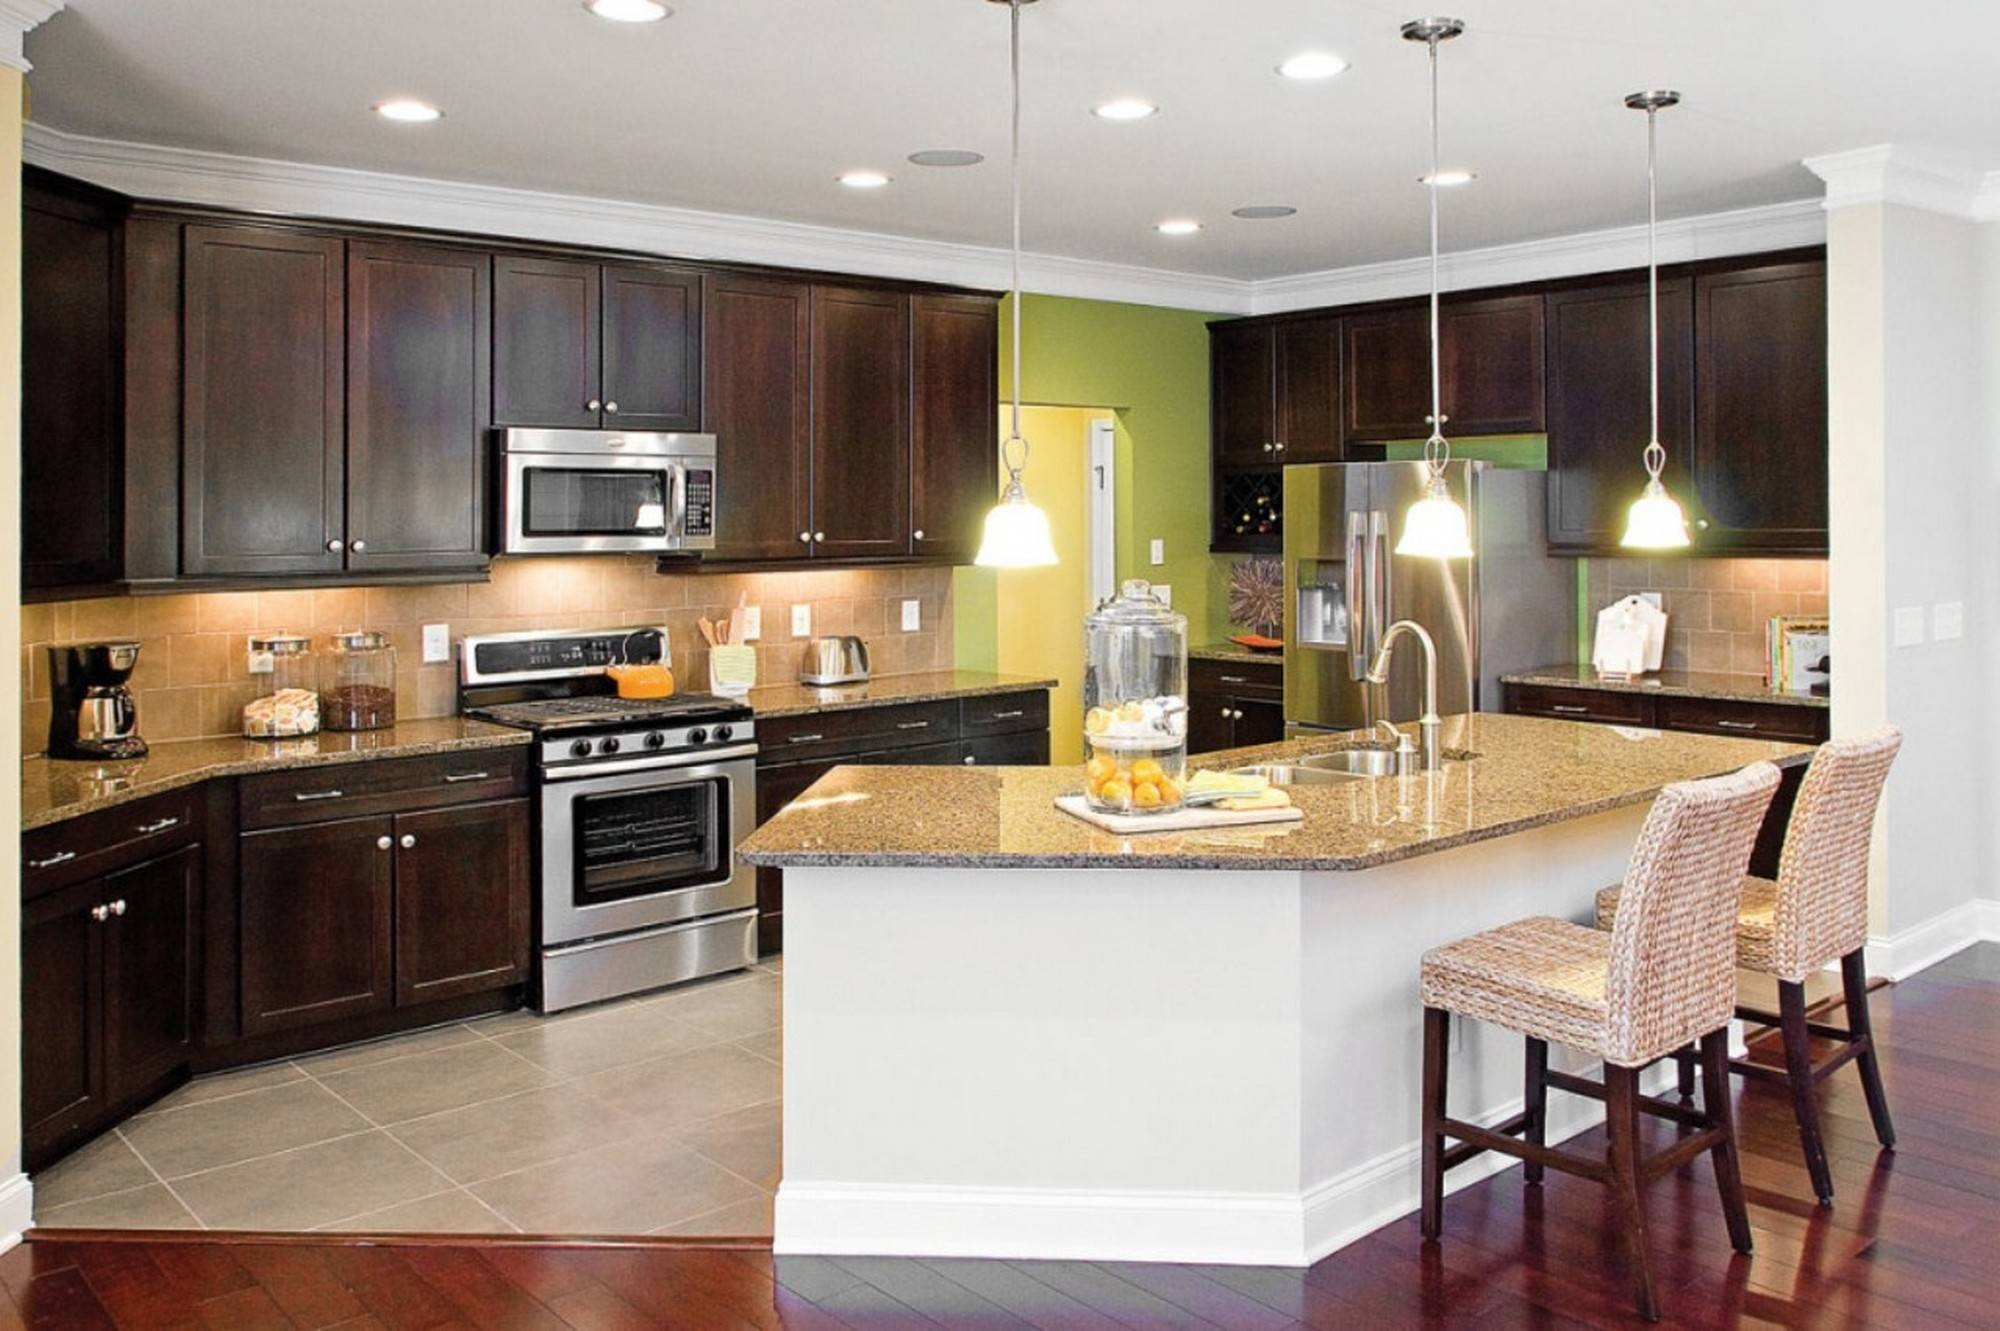 Mini Pendant Lights For Kitchen Island - Baby-Exit in Mini Pendant Lighting for Kitchen Island (Image 9 of 15)